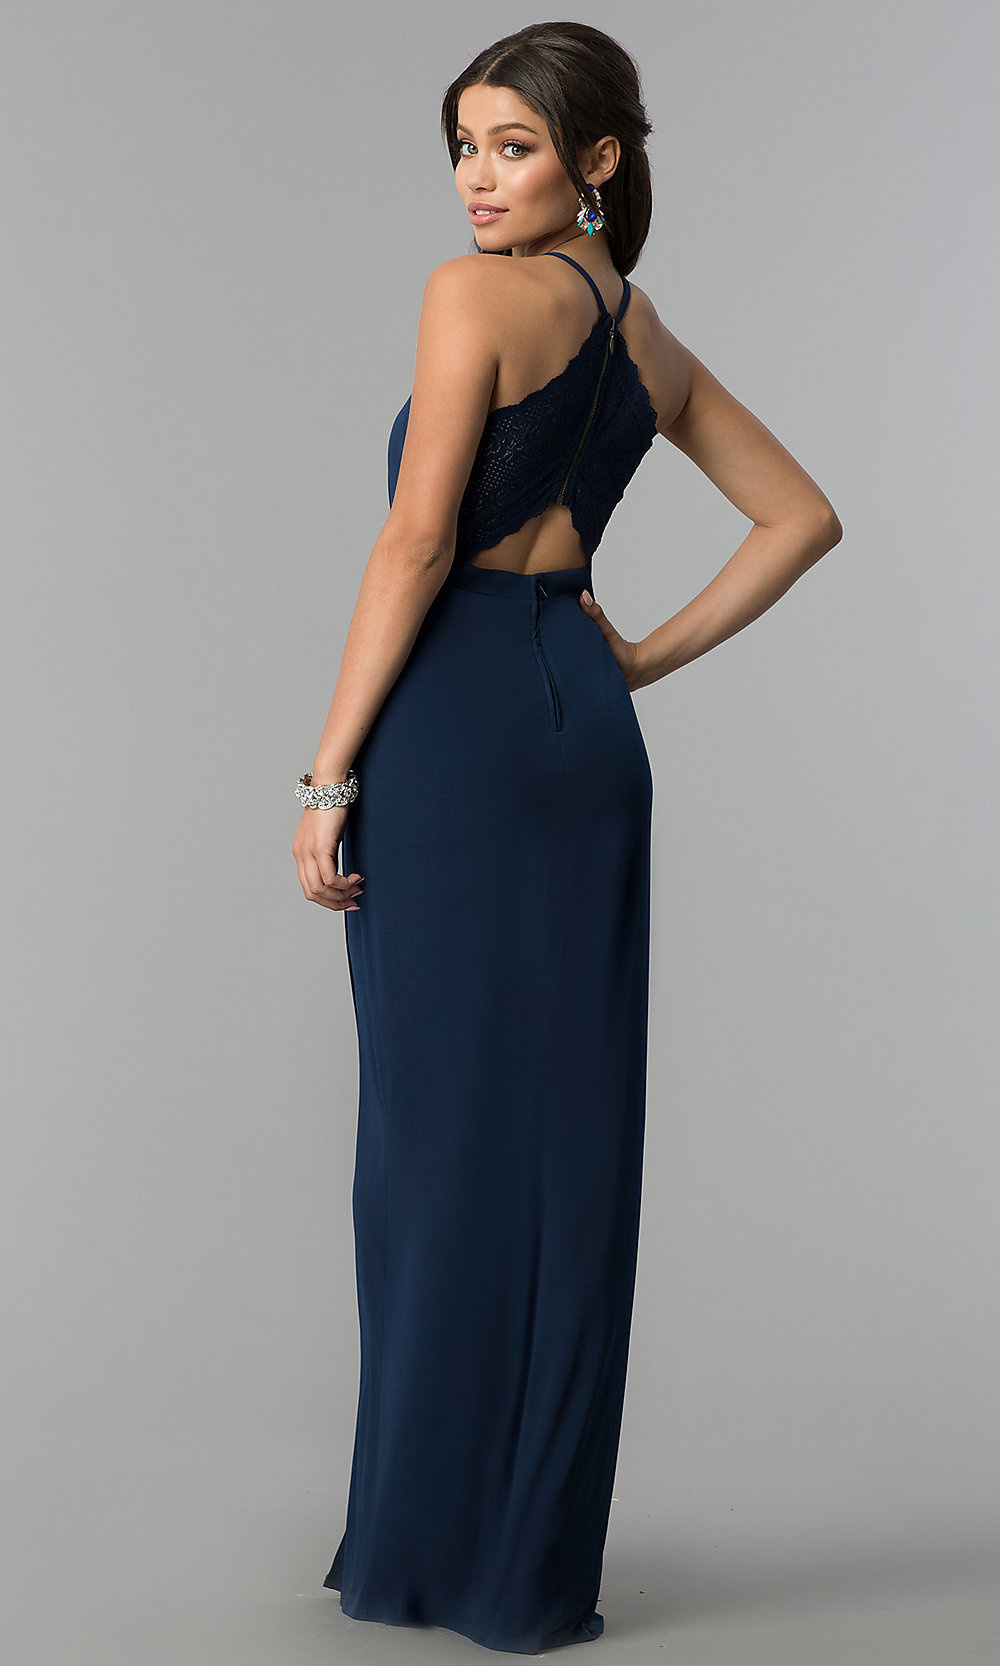 5106a4dedb ... v-neck prom dress in dark navy blue. Style  SS. Tap to expand